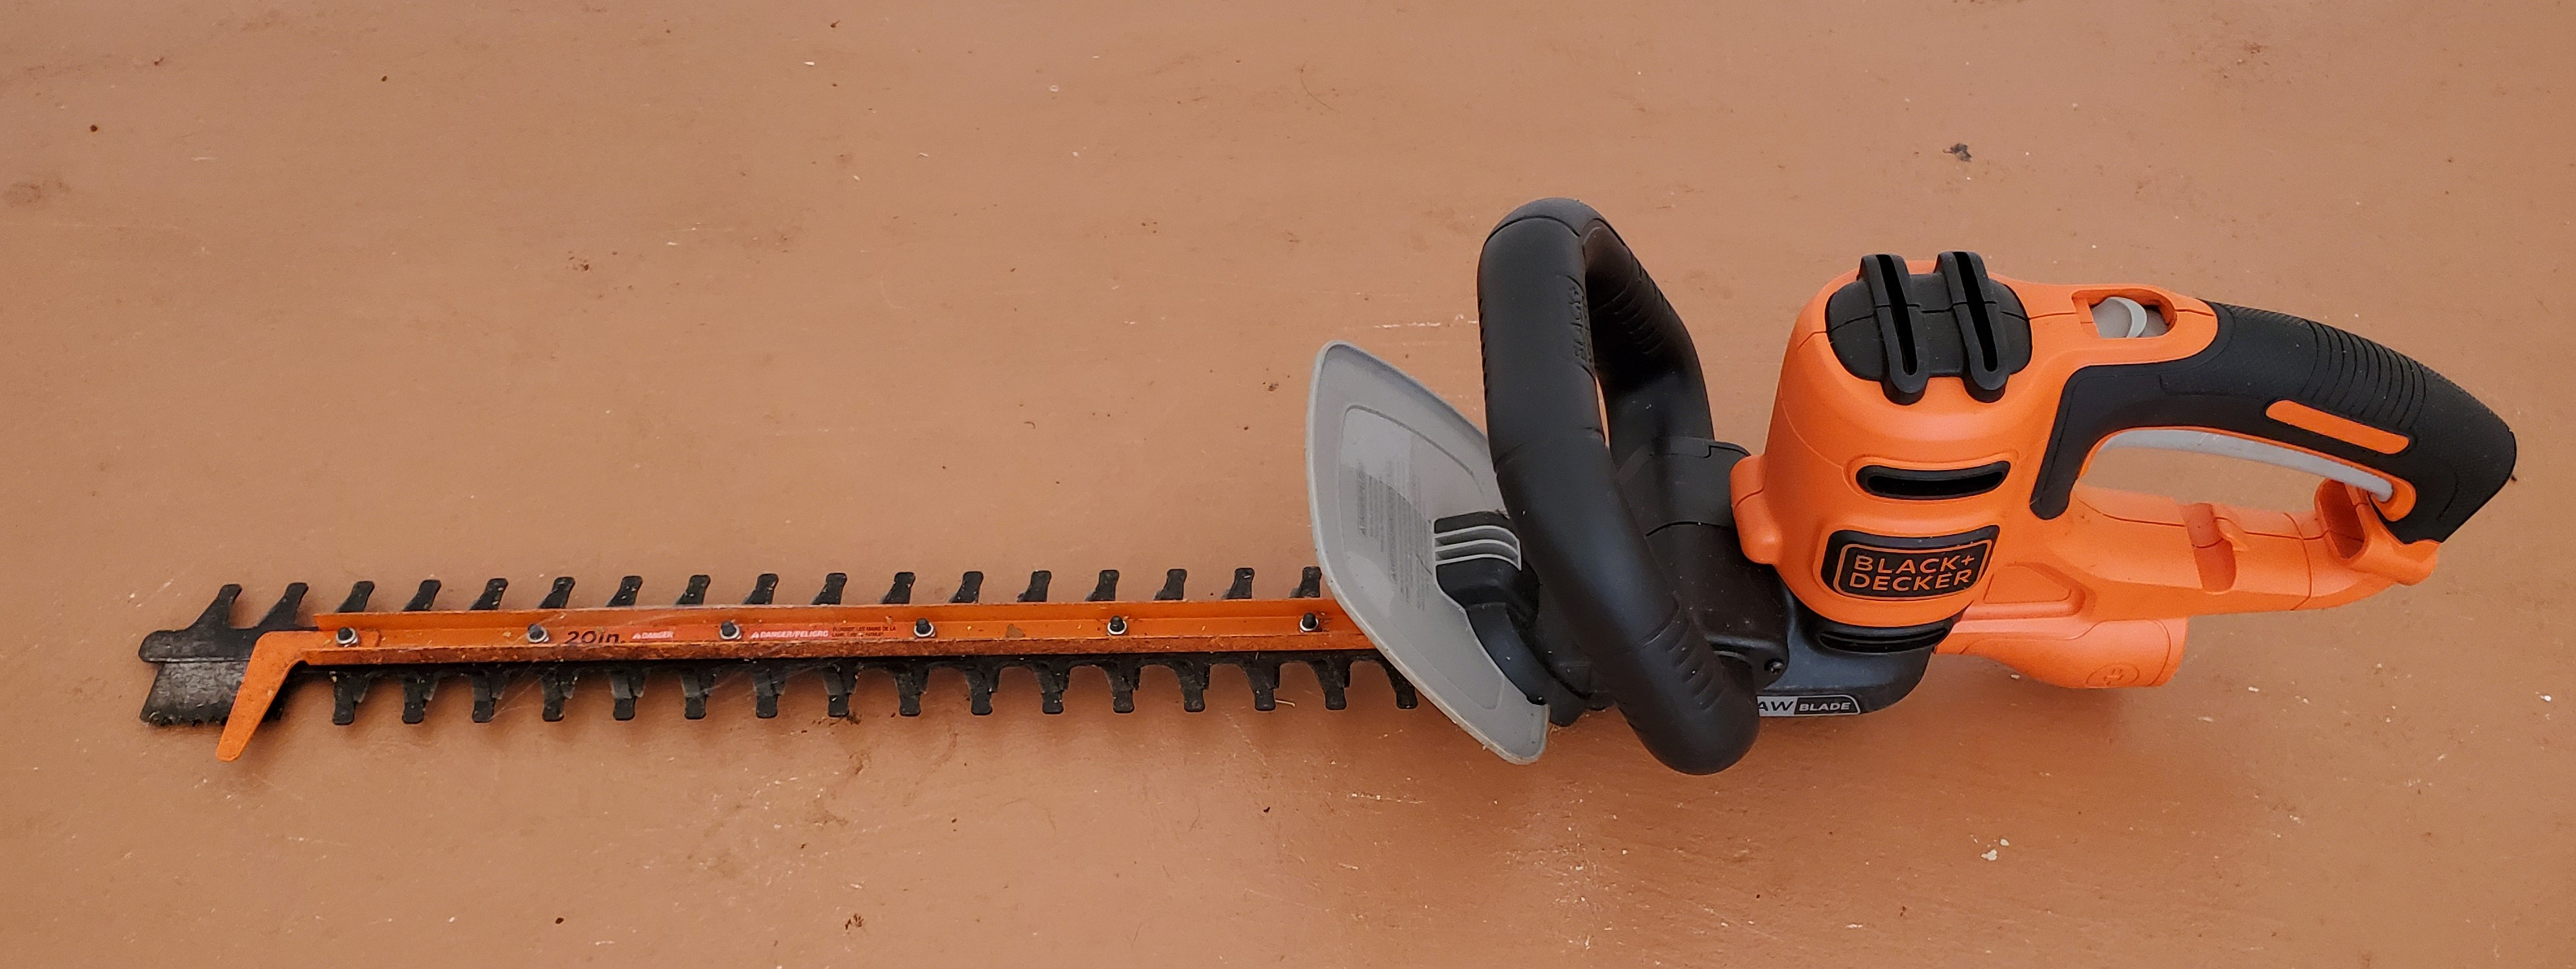 Black & Decker 20 In Hedge Trimmer